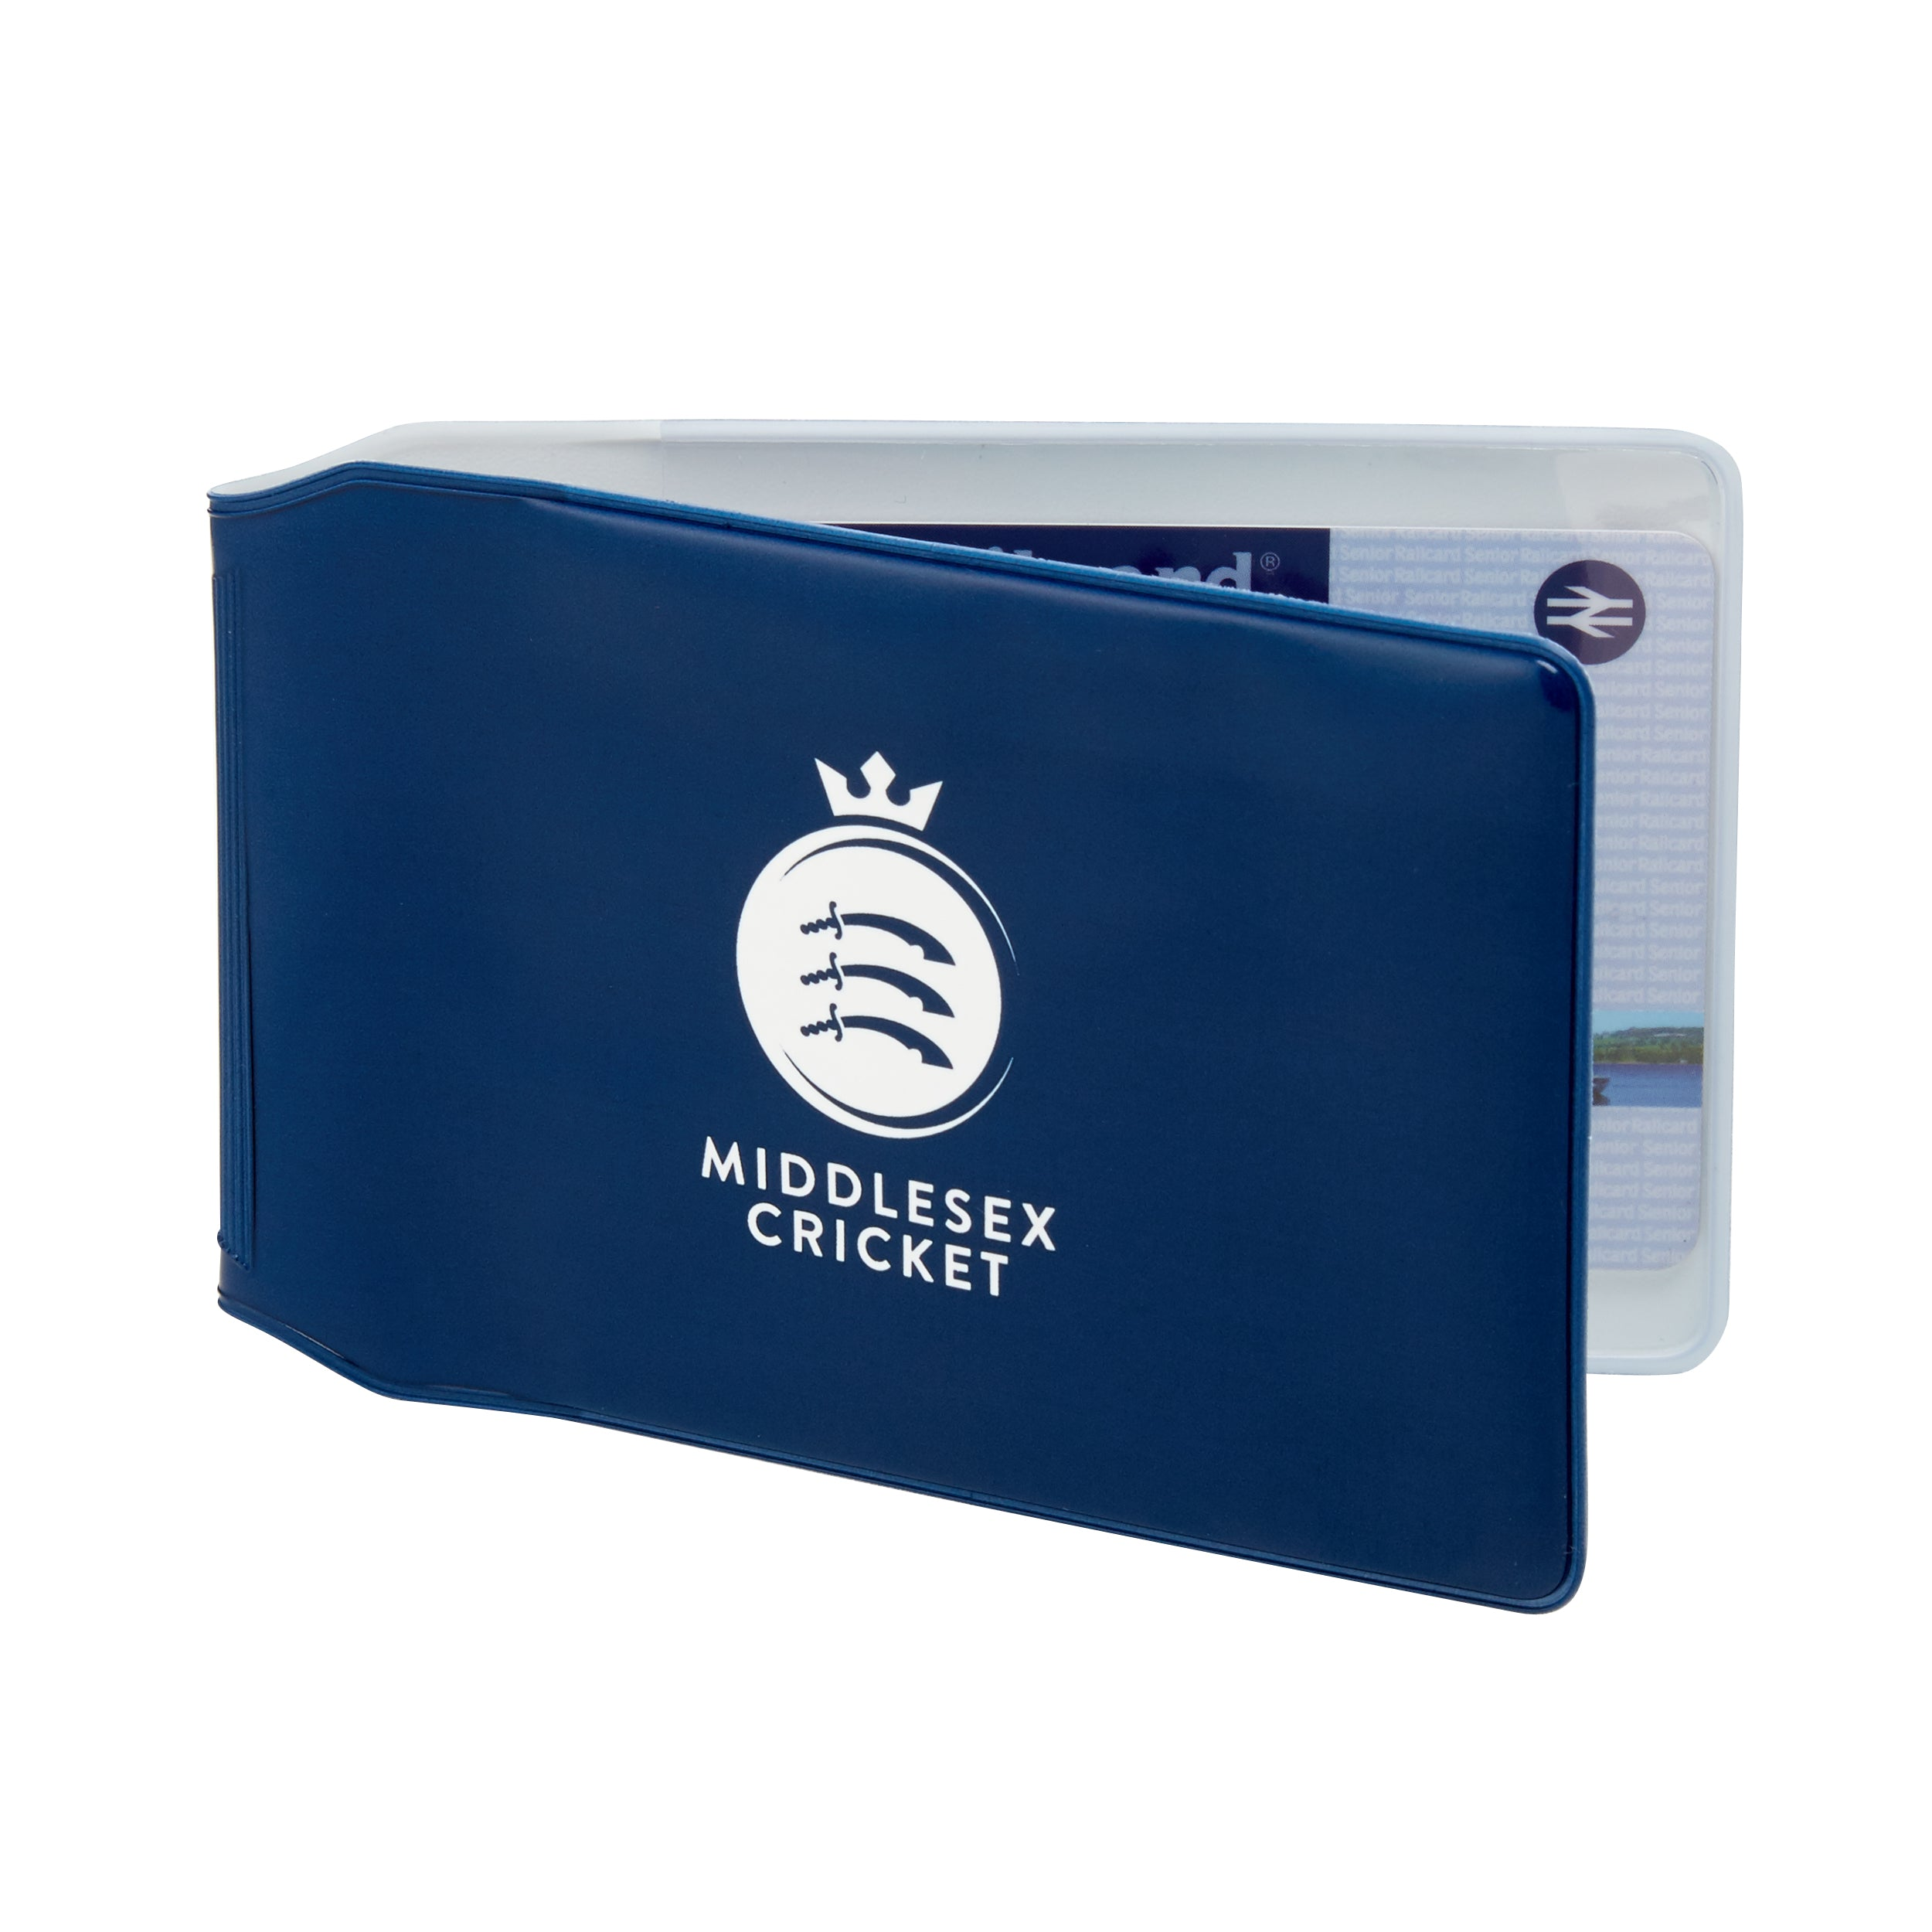 MIDDLESEX CRICKET OYSTER CARD HOLDER